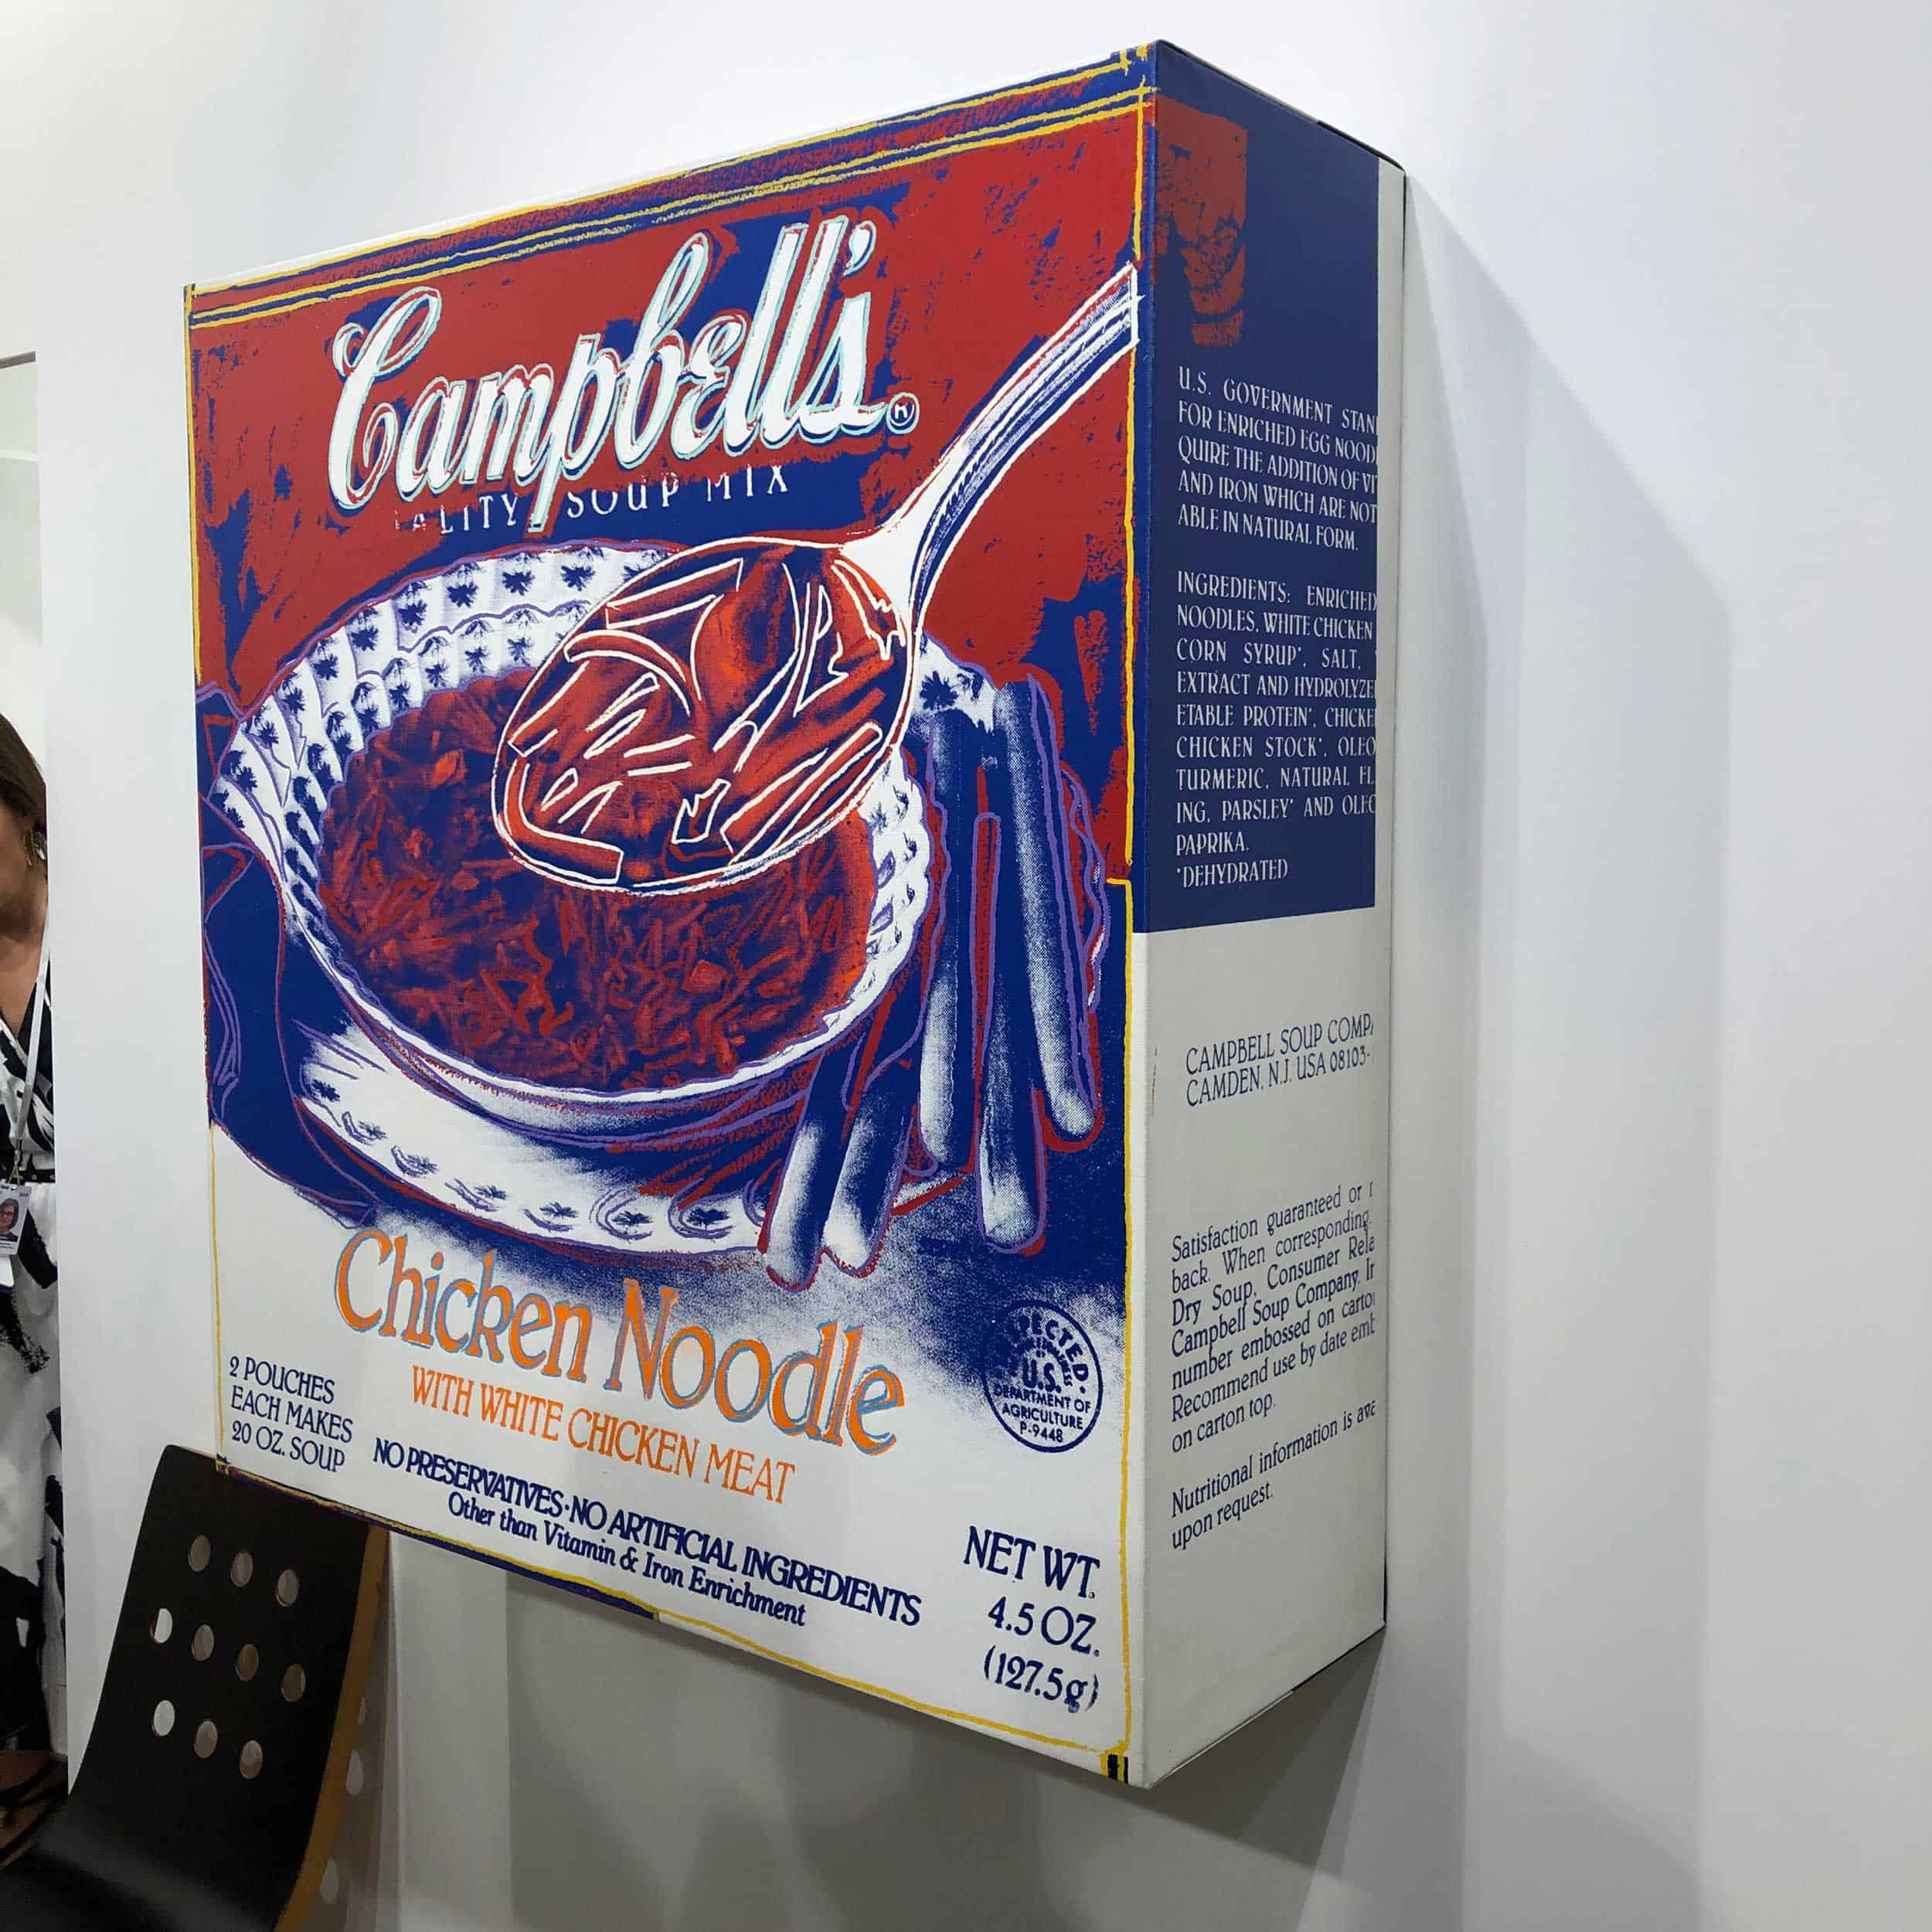 Andy Warhol, Campbell's chicken noodle soup box, 1986, Galerie Thaddaeus Ropac